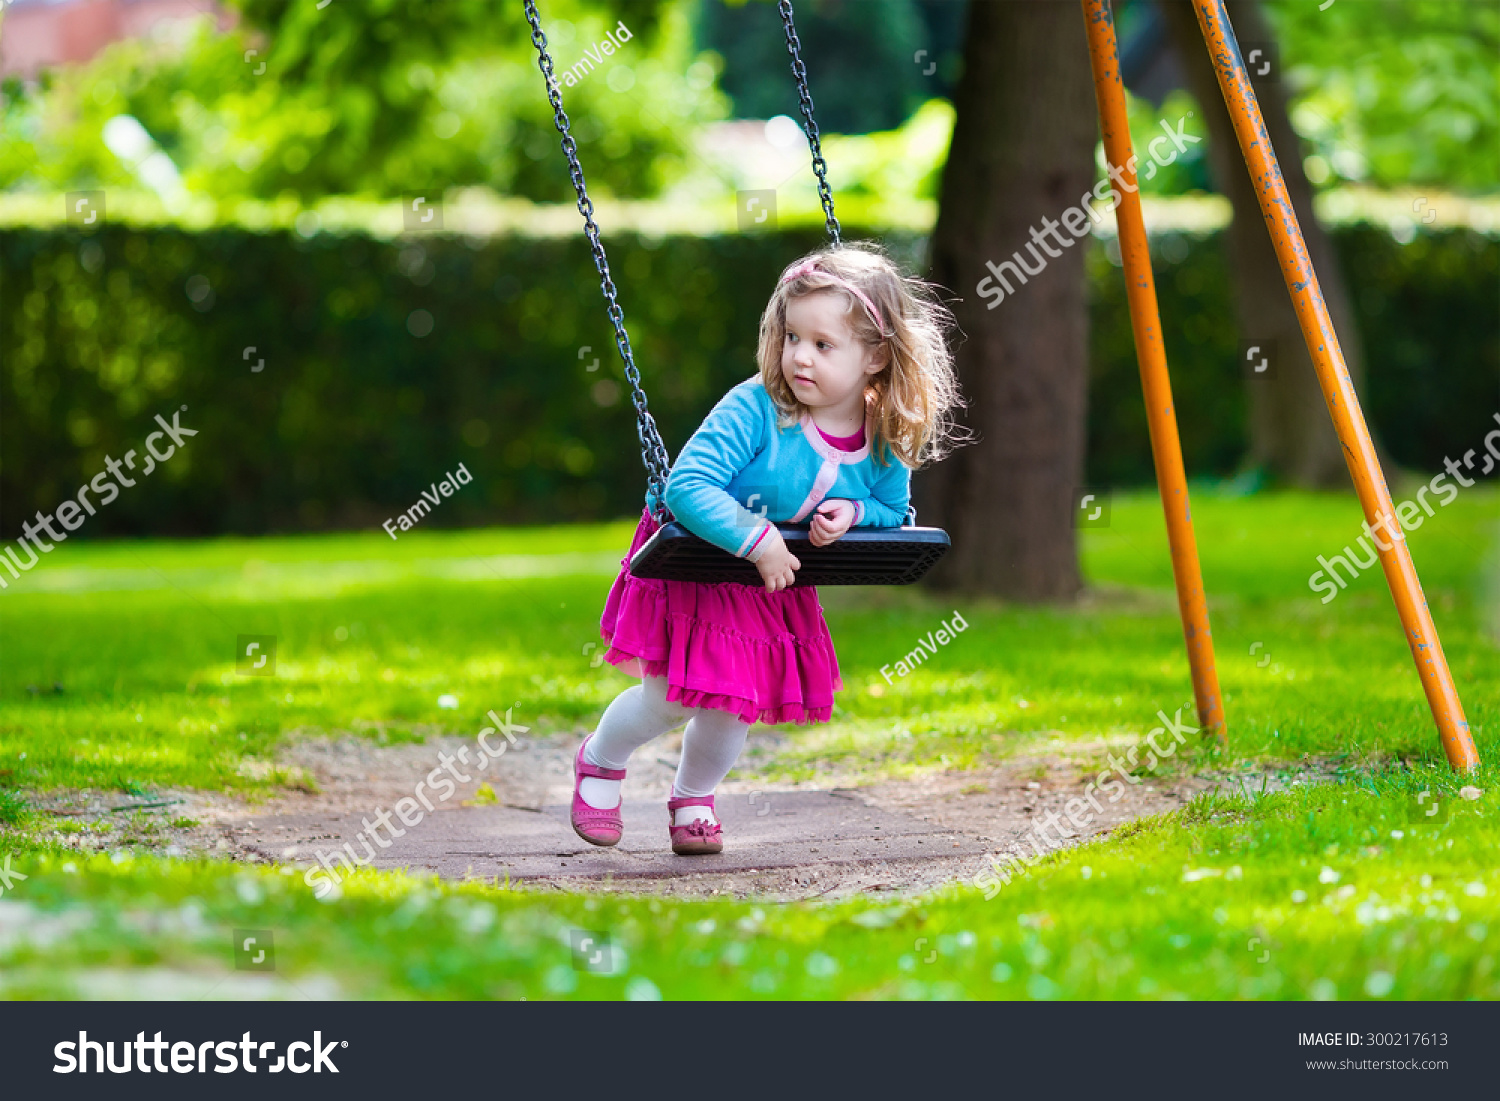 Little girls playground images for Childrens play yard